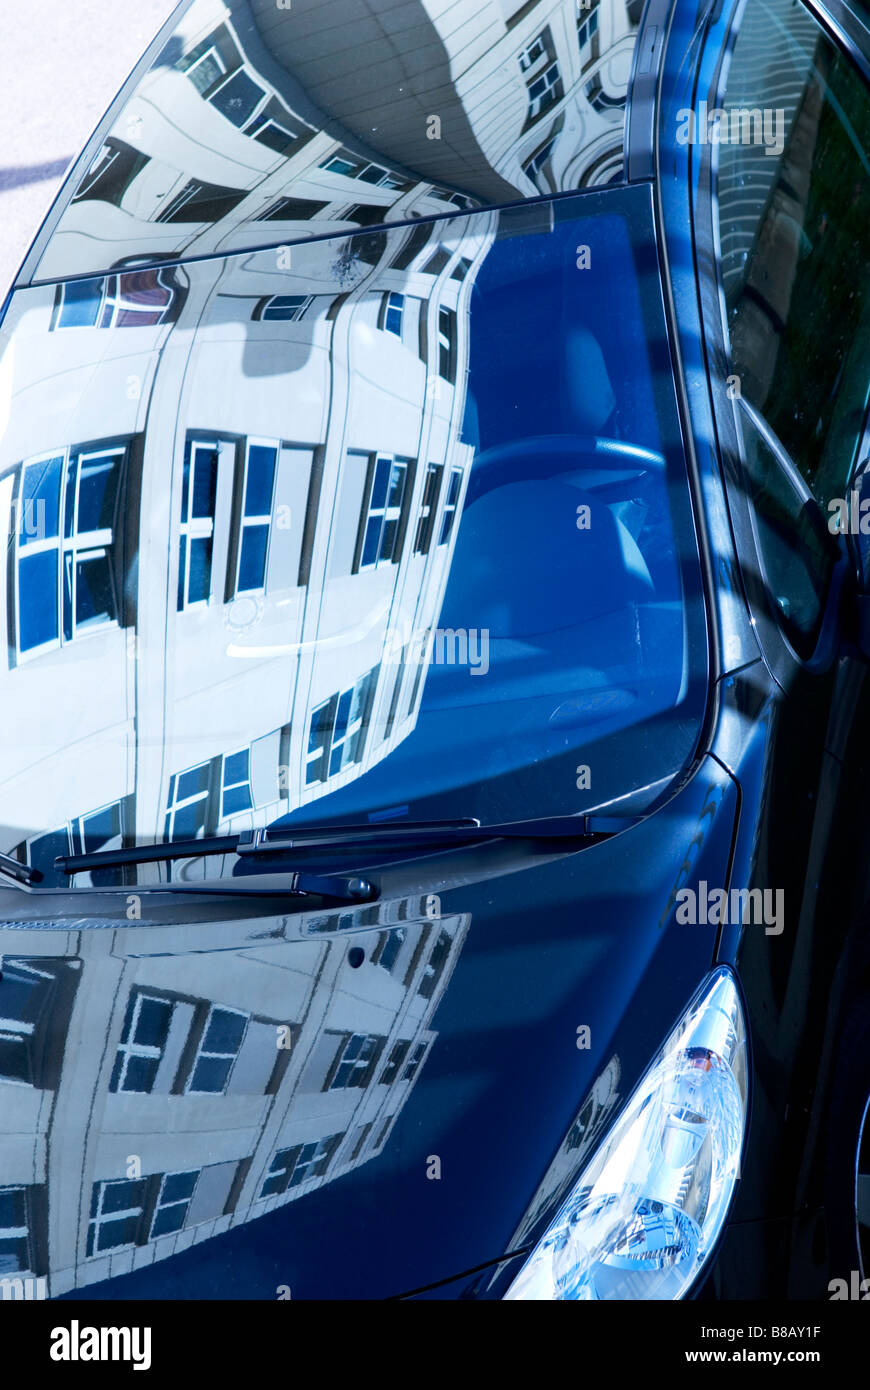 detail of polished car reflecting office blocks in its windows and body work - Stock Image